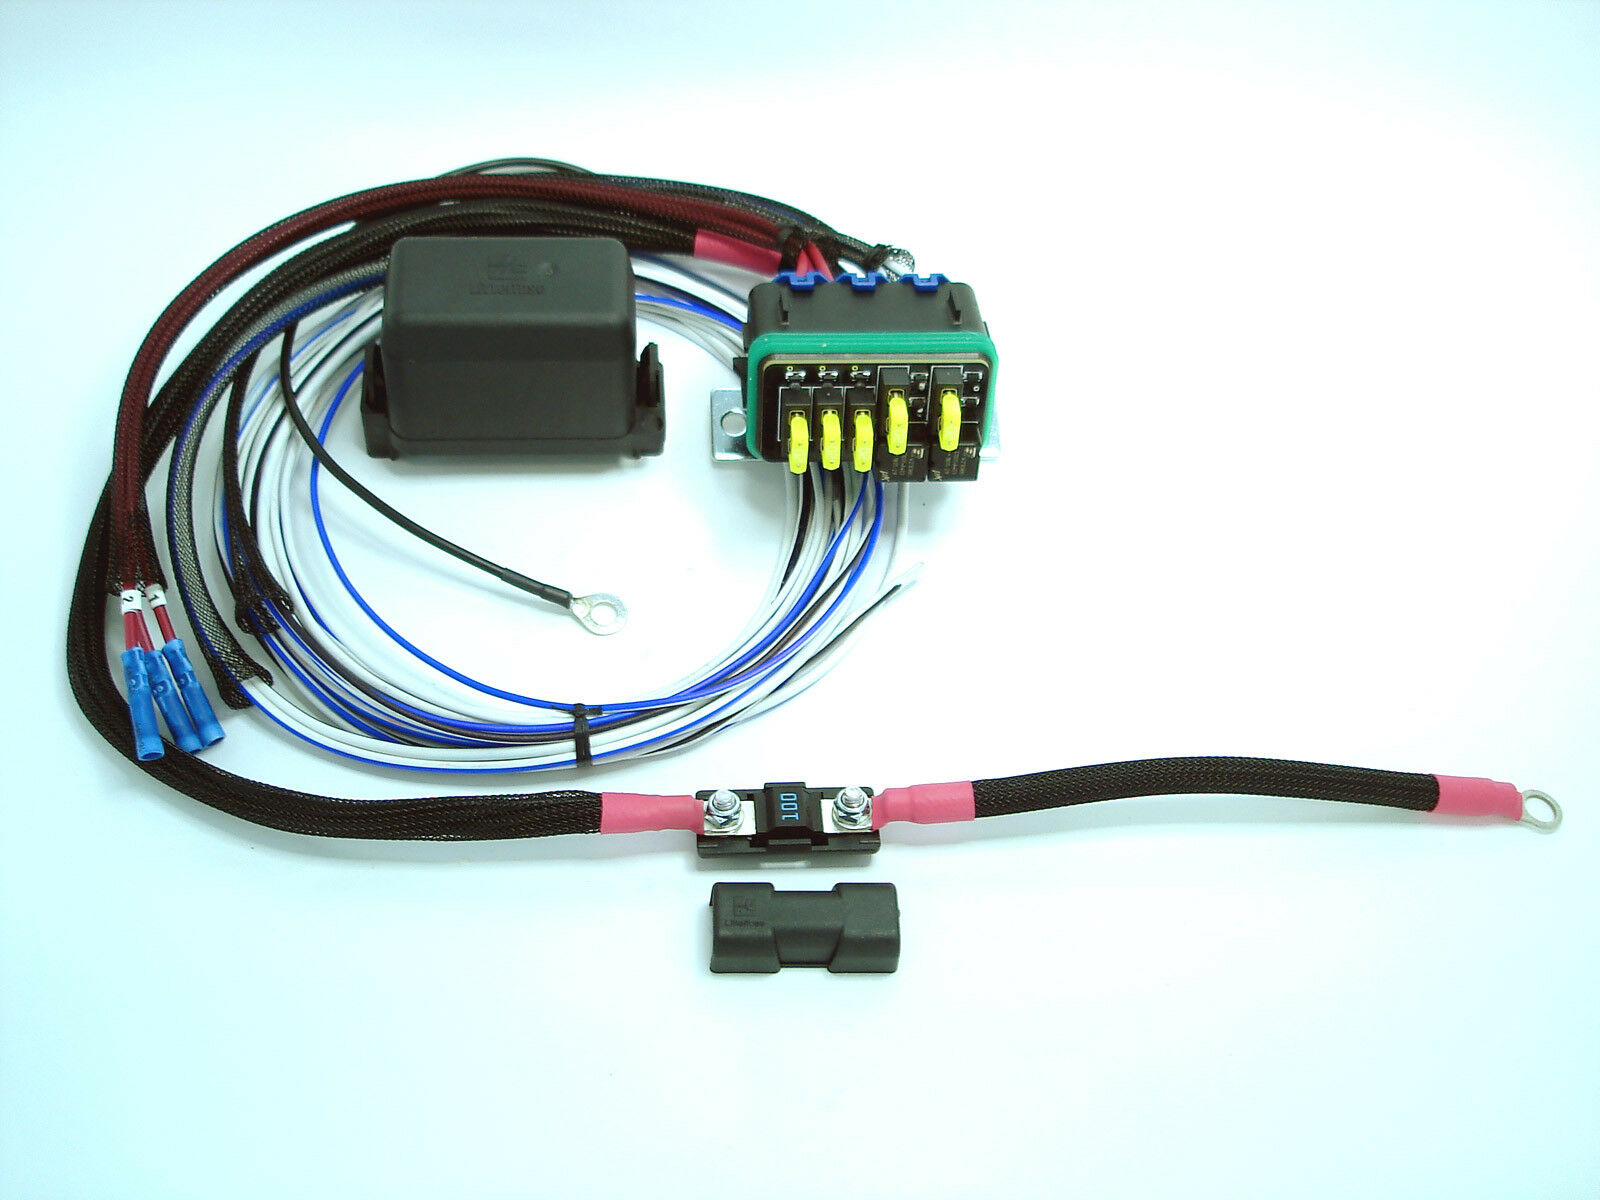 Kit Car Fuse Relay Box Universal Waterproof Distribution Jeep Spod Hwb18 1 Of 7only 2 Available